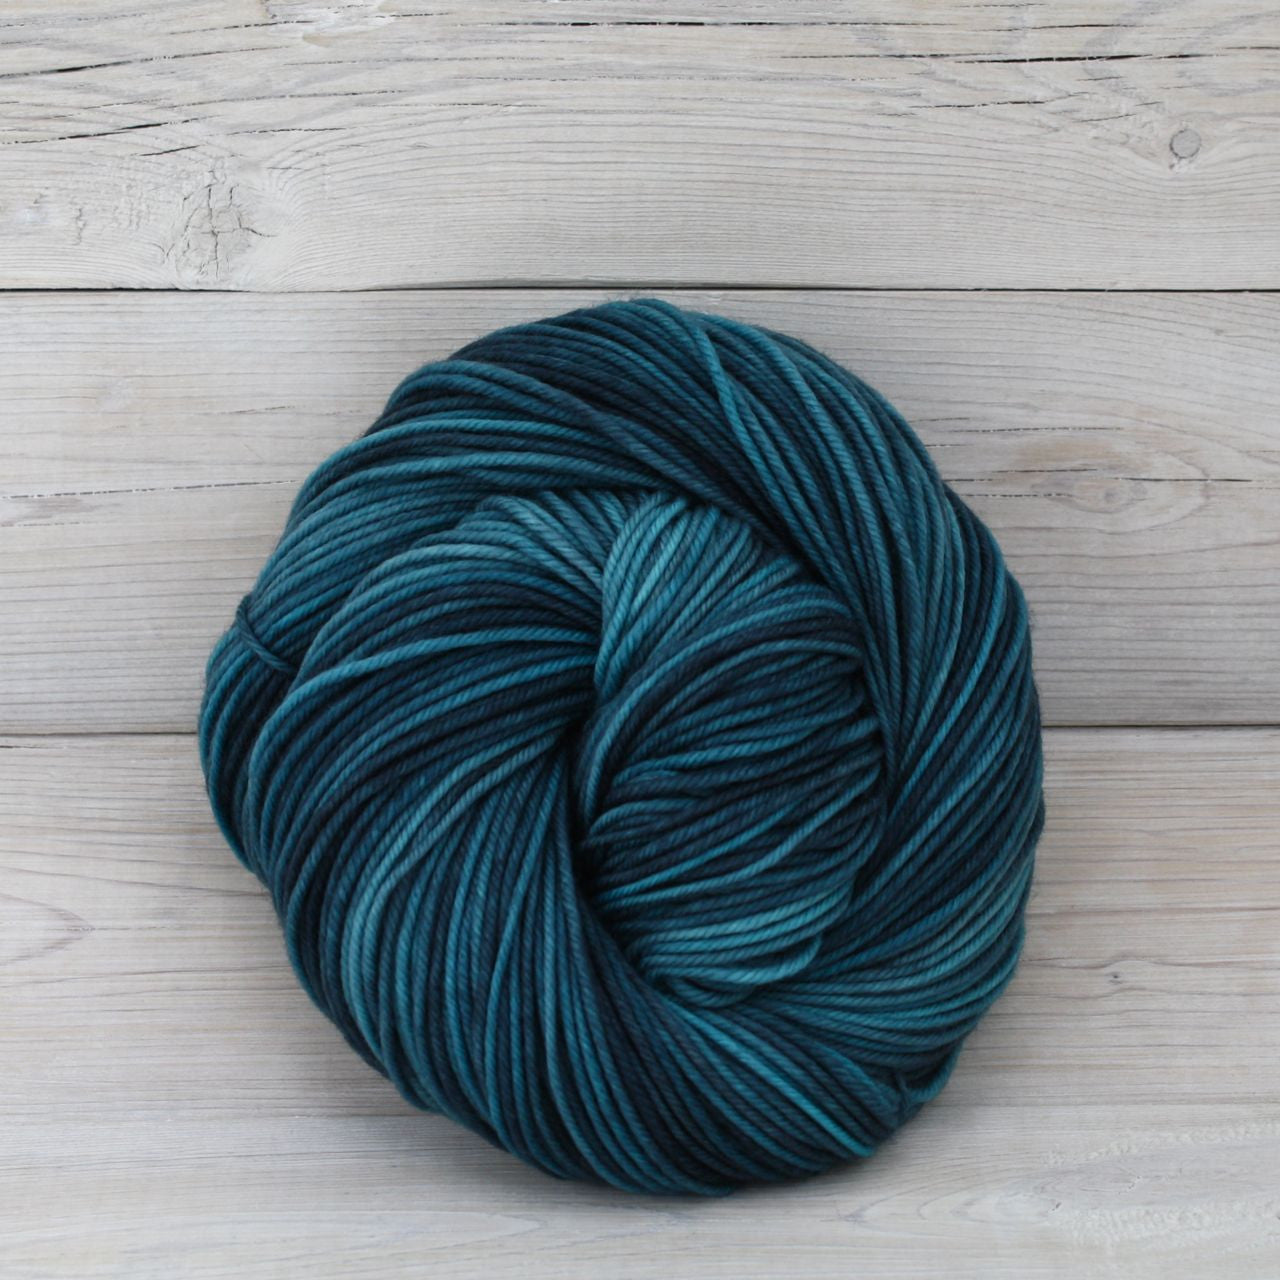 Luna Grey Fiber Arts Calypso Yarn | Colorway: Techno